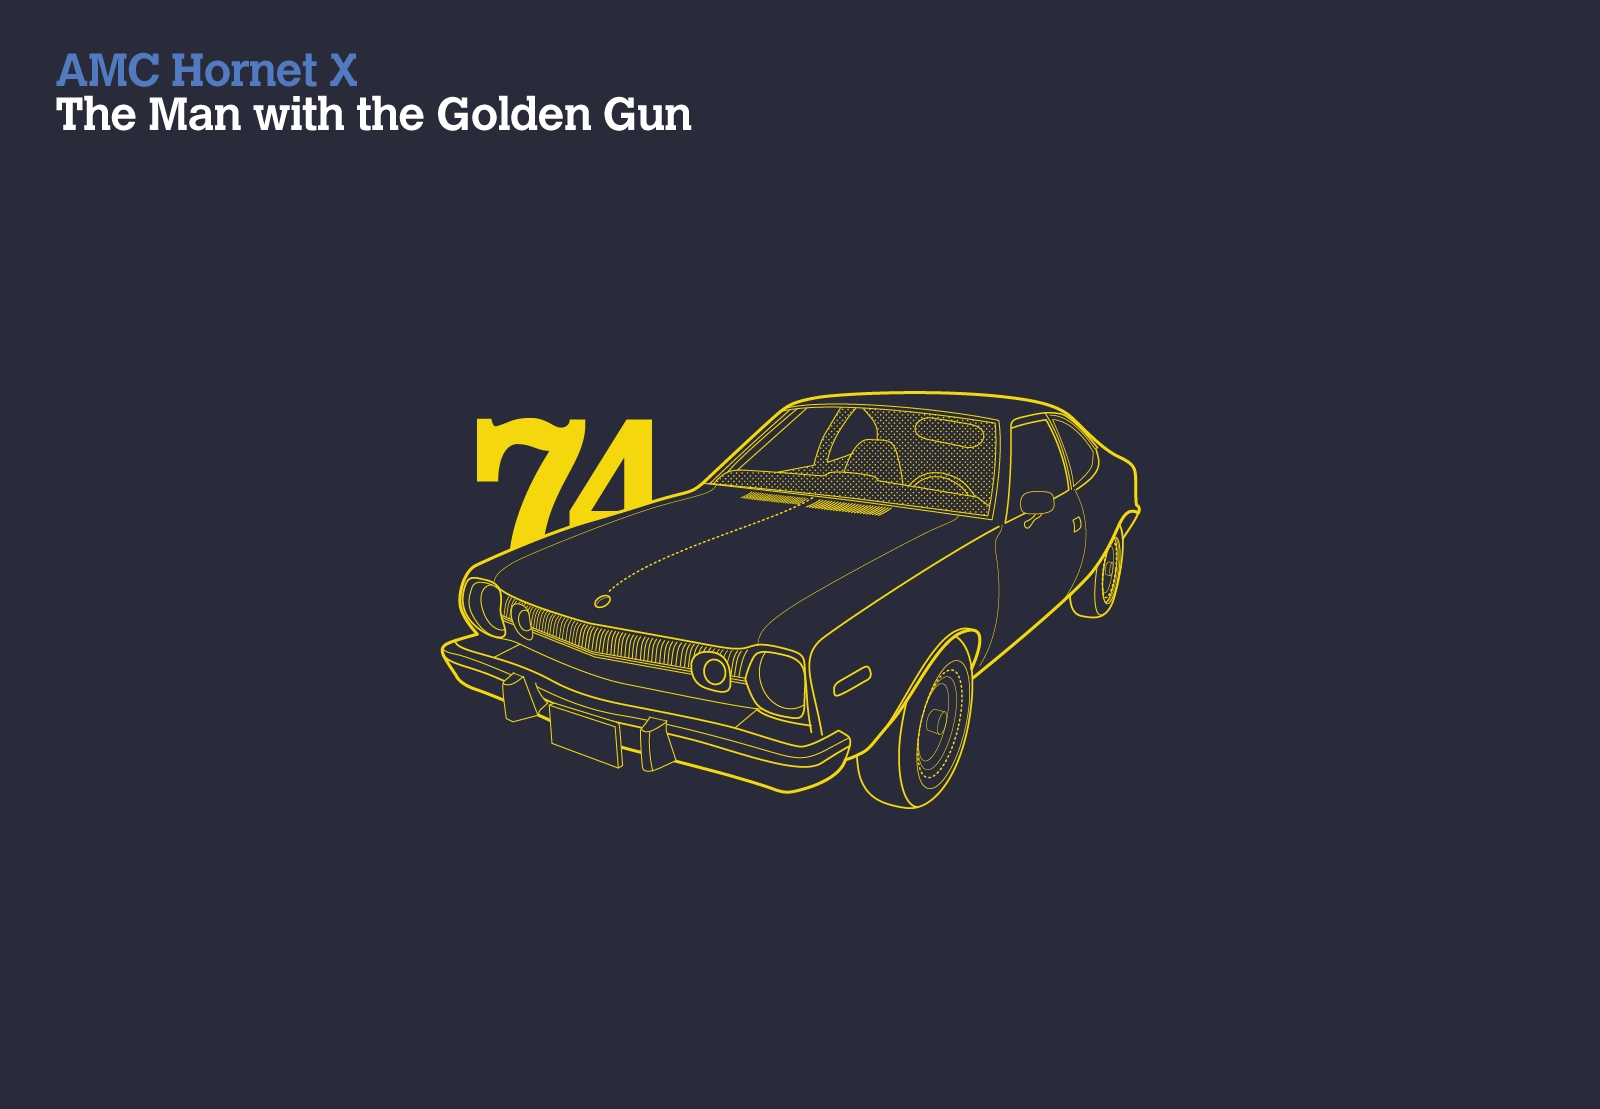 AMC Hornet X The Man With The Golden Gun